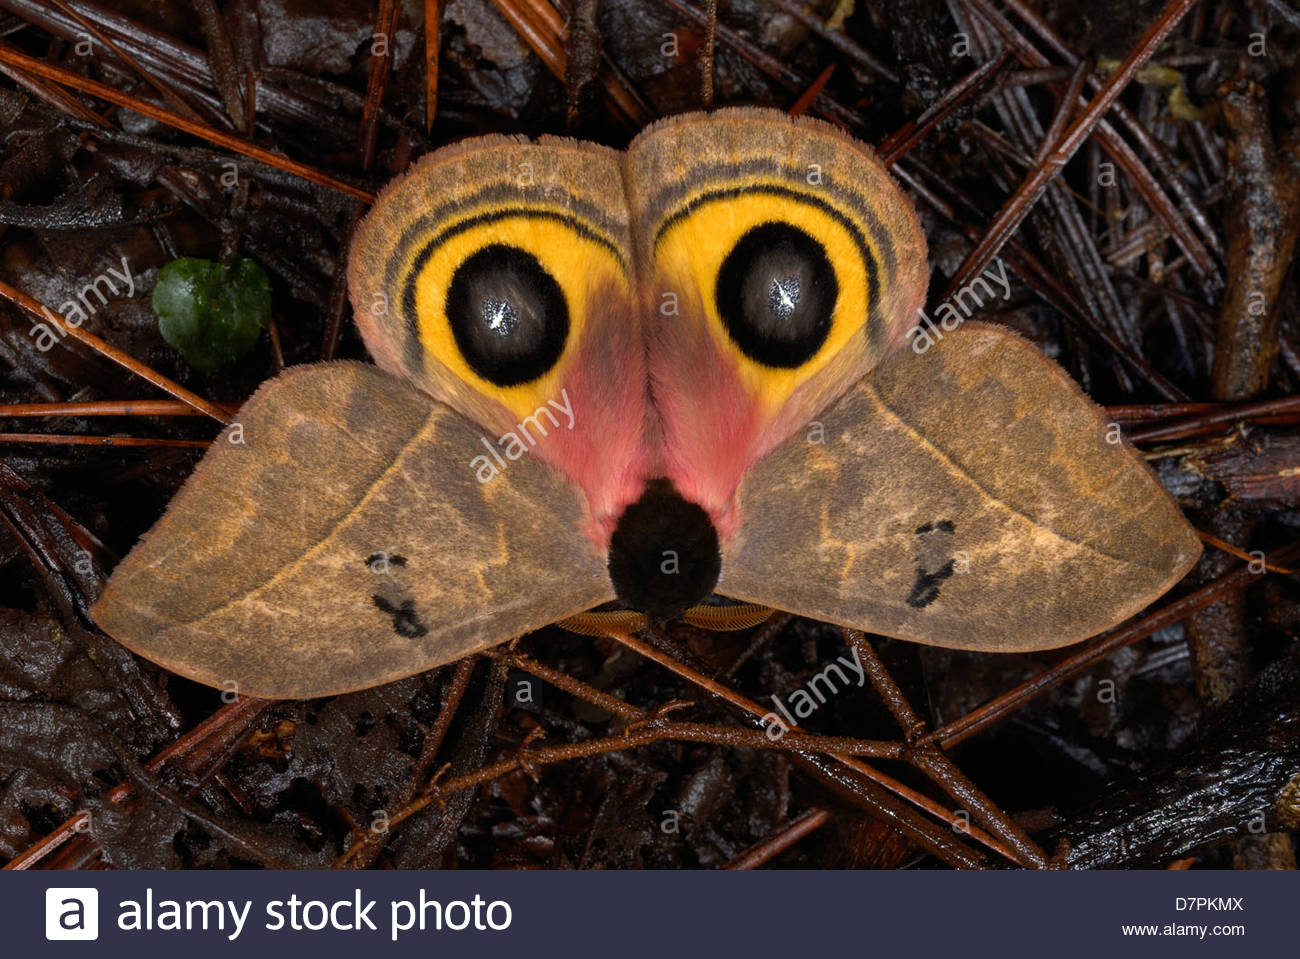 Owl Moth (Automeris belti) showing defensive eyes and 'Opossum Face' - Stock Image